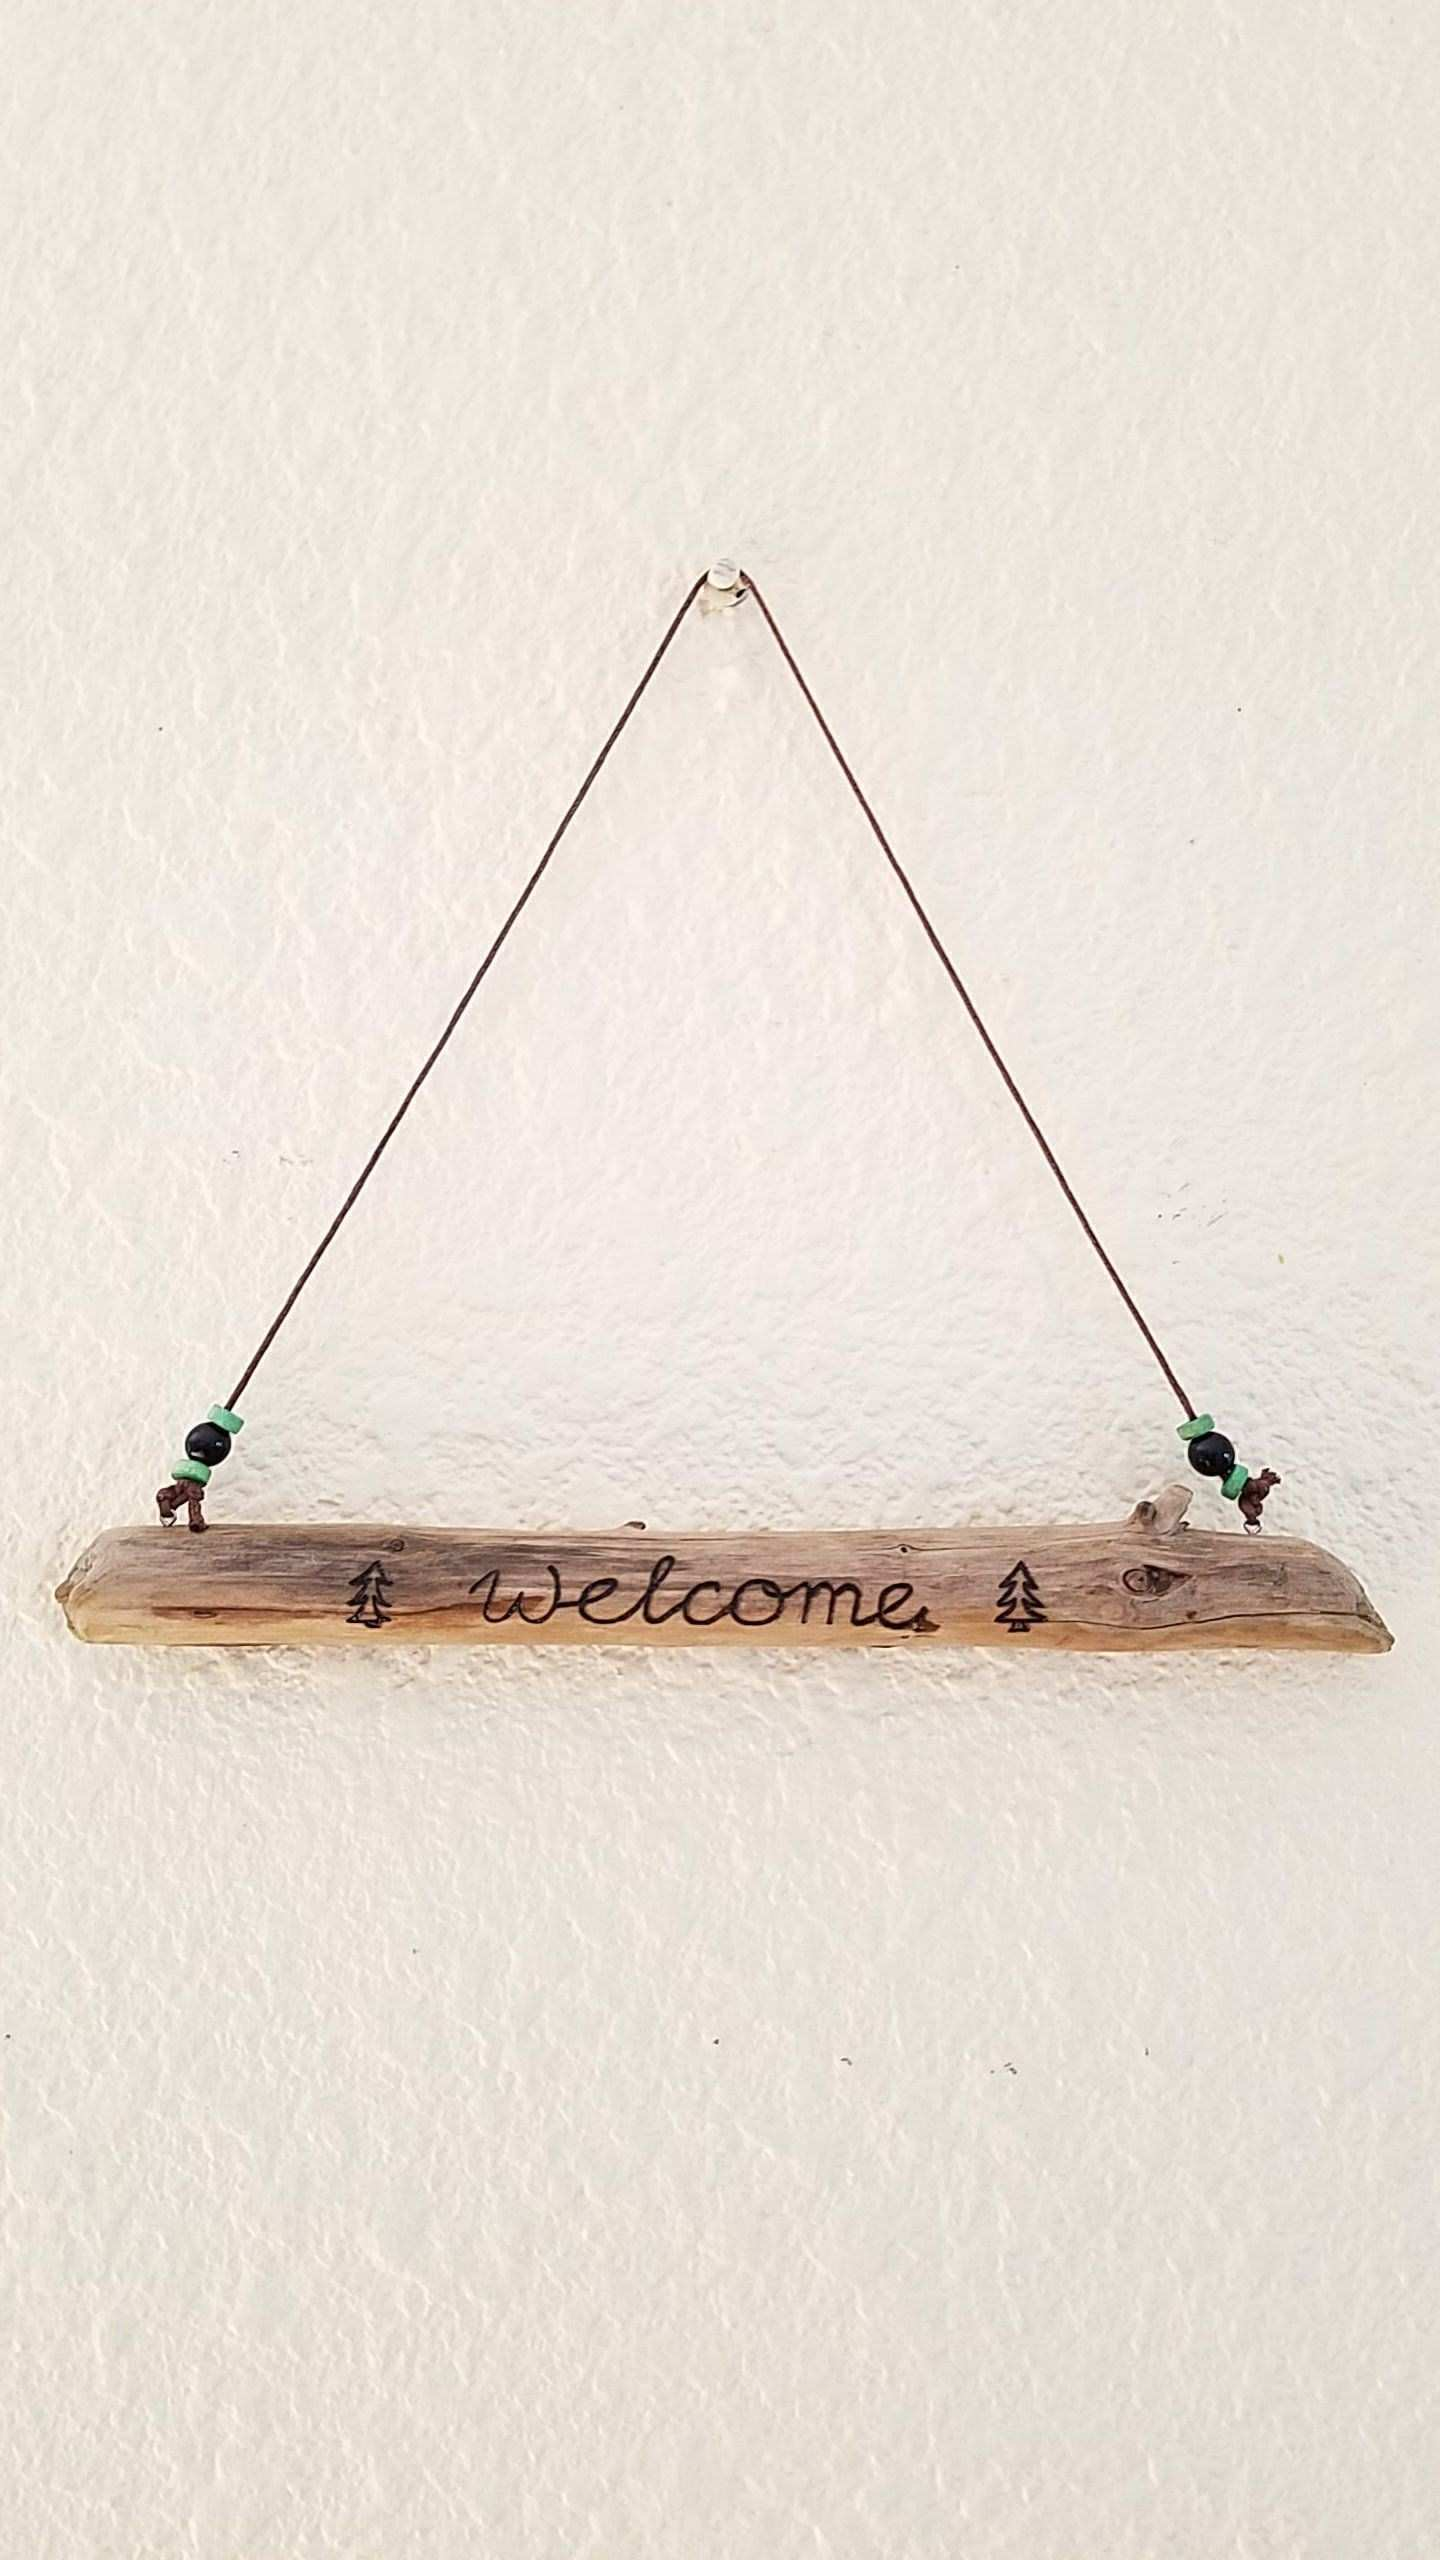 Wel e Driftwood Art Modern Rustic Wall Hanging for Home Mountain